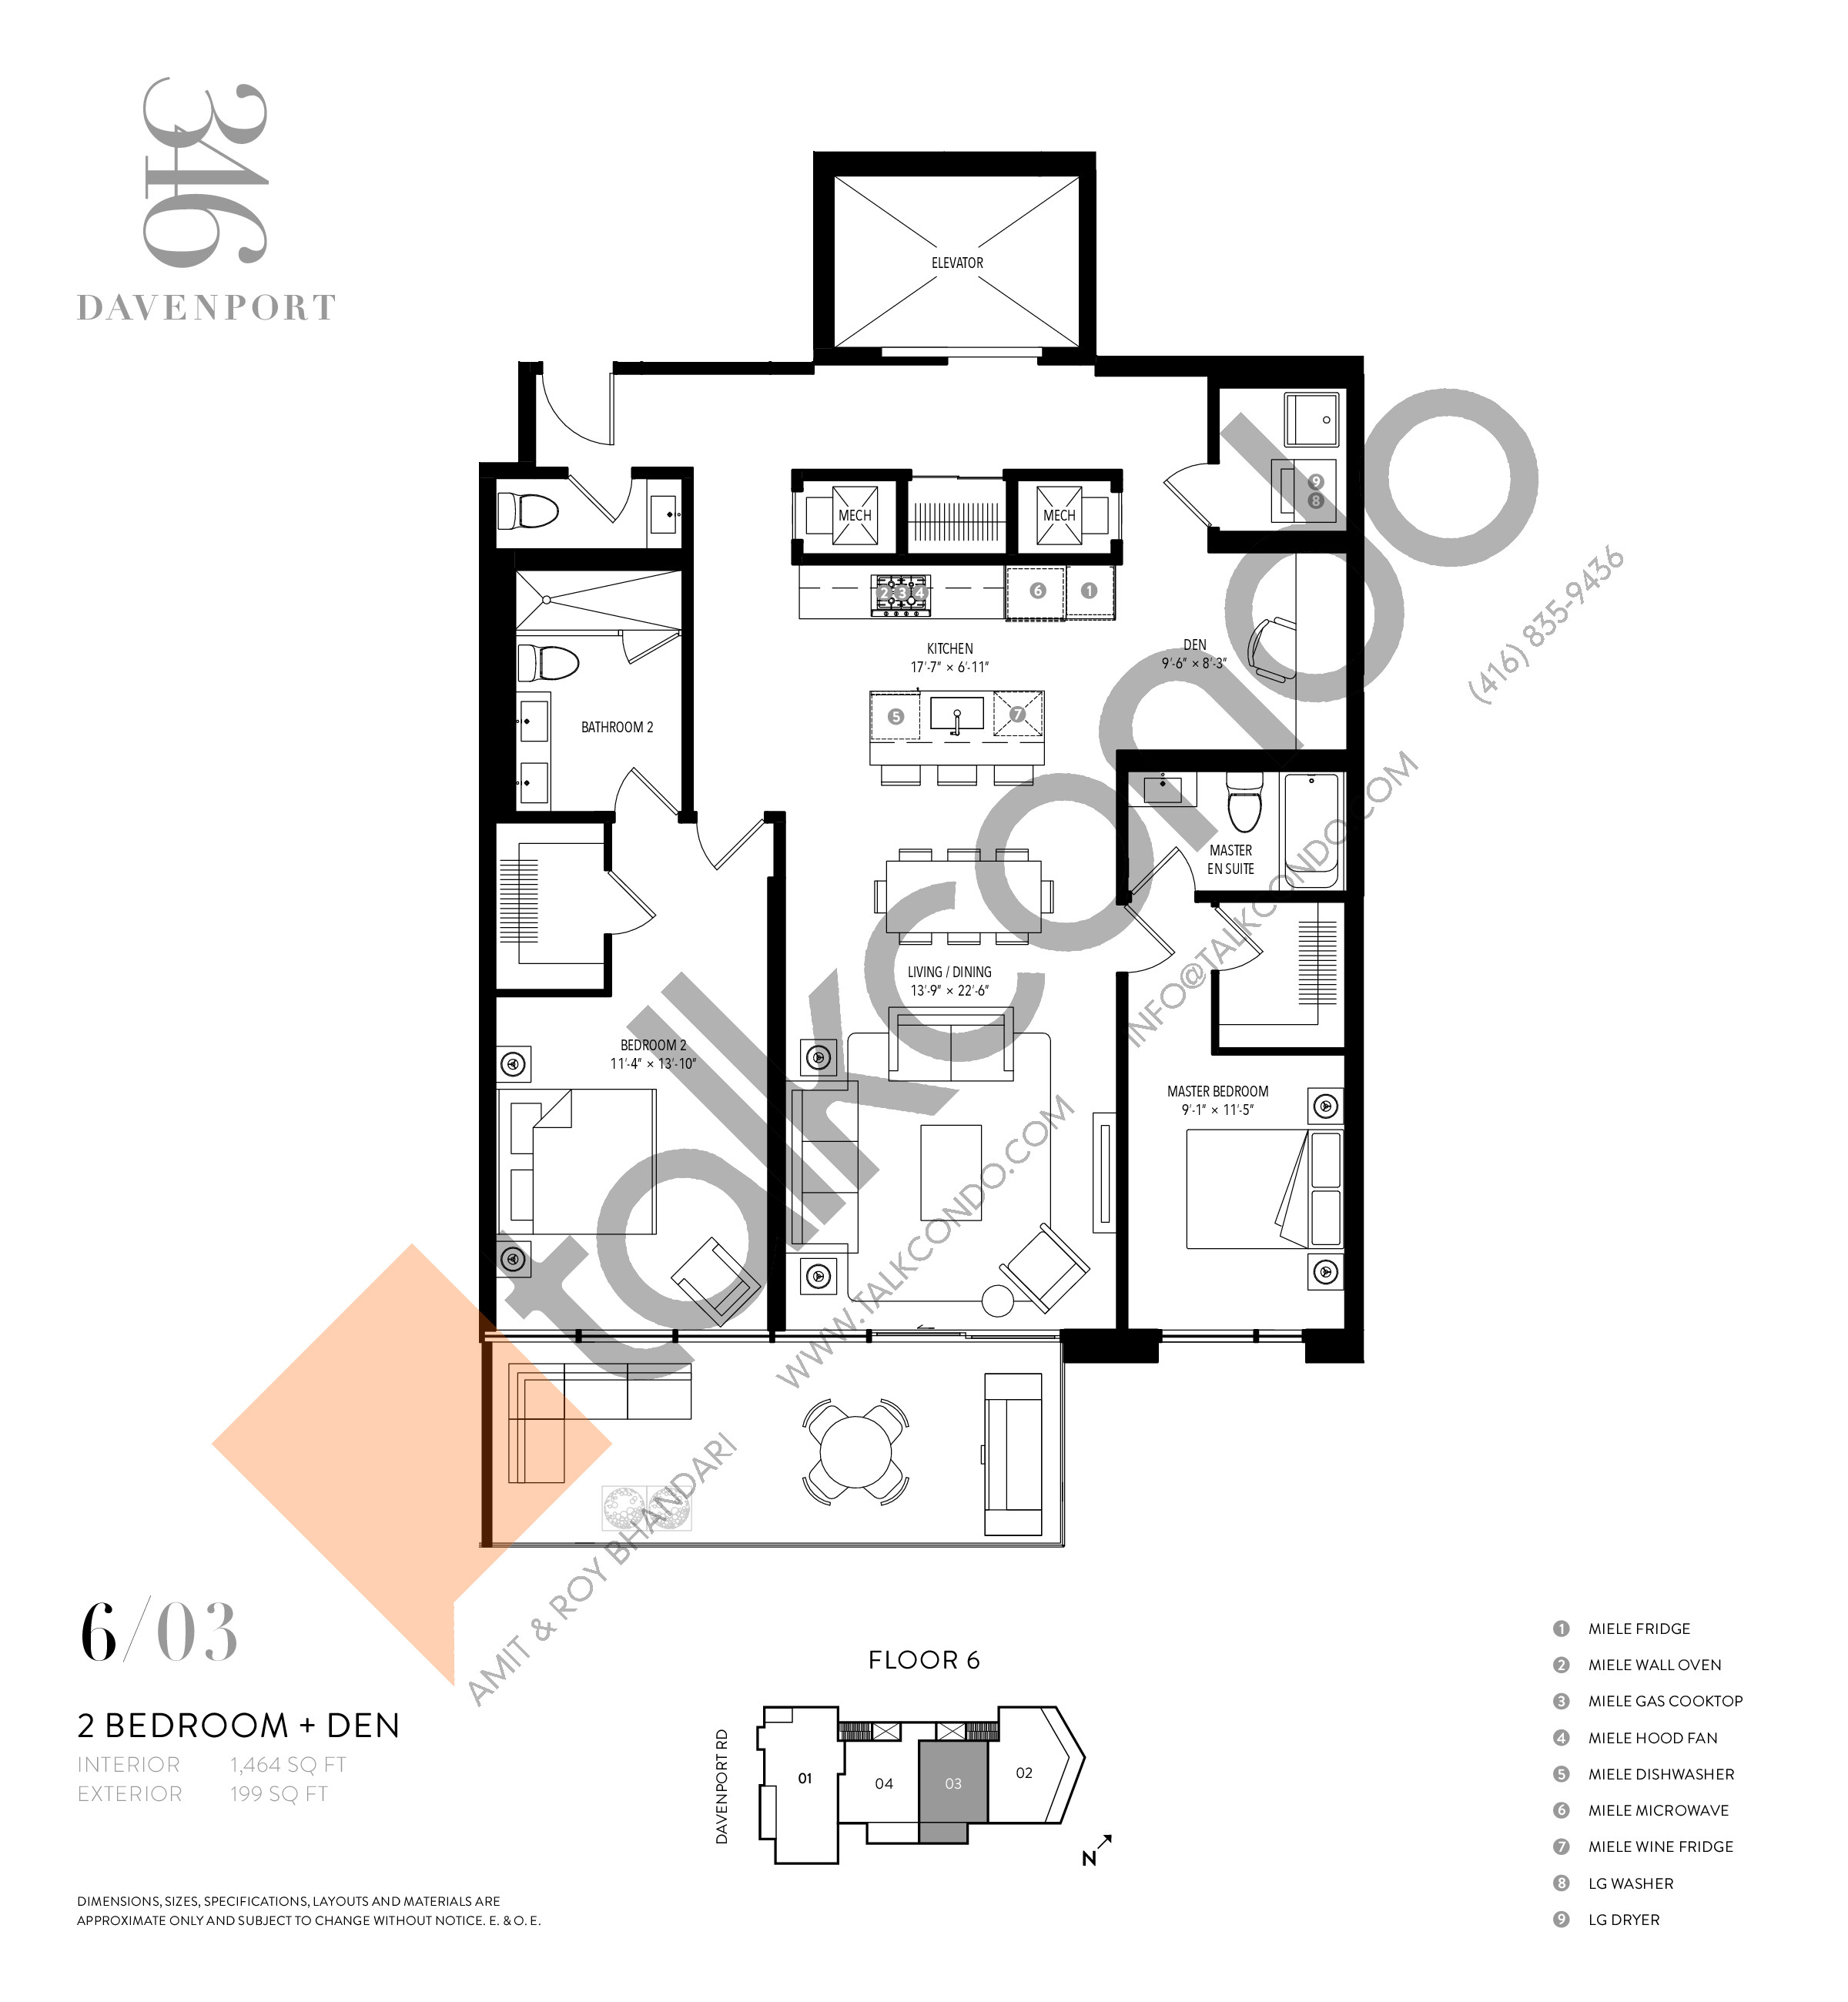 603 Floor Plan at 346 Davenport Condos - 1930 sq.ft